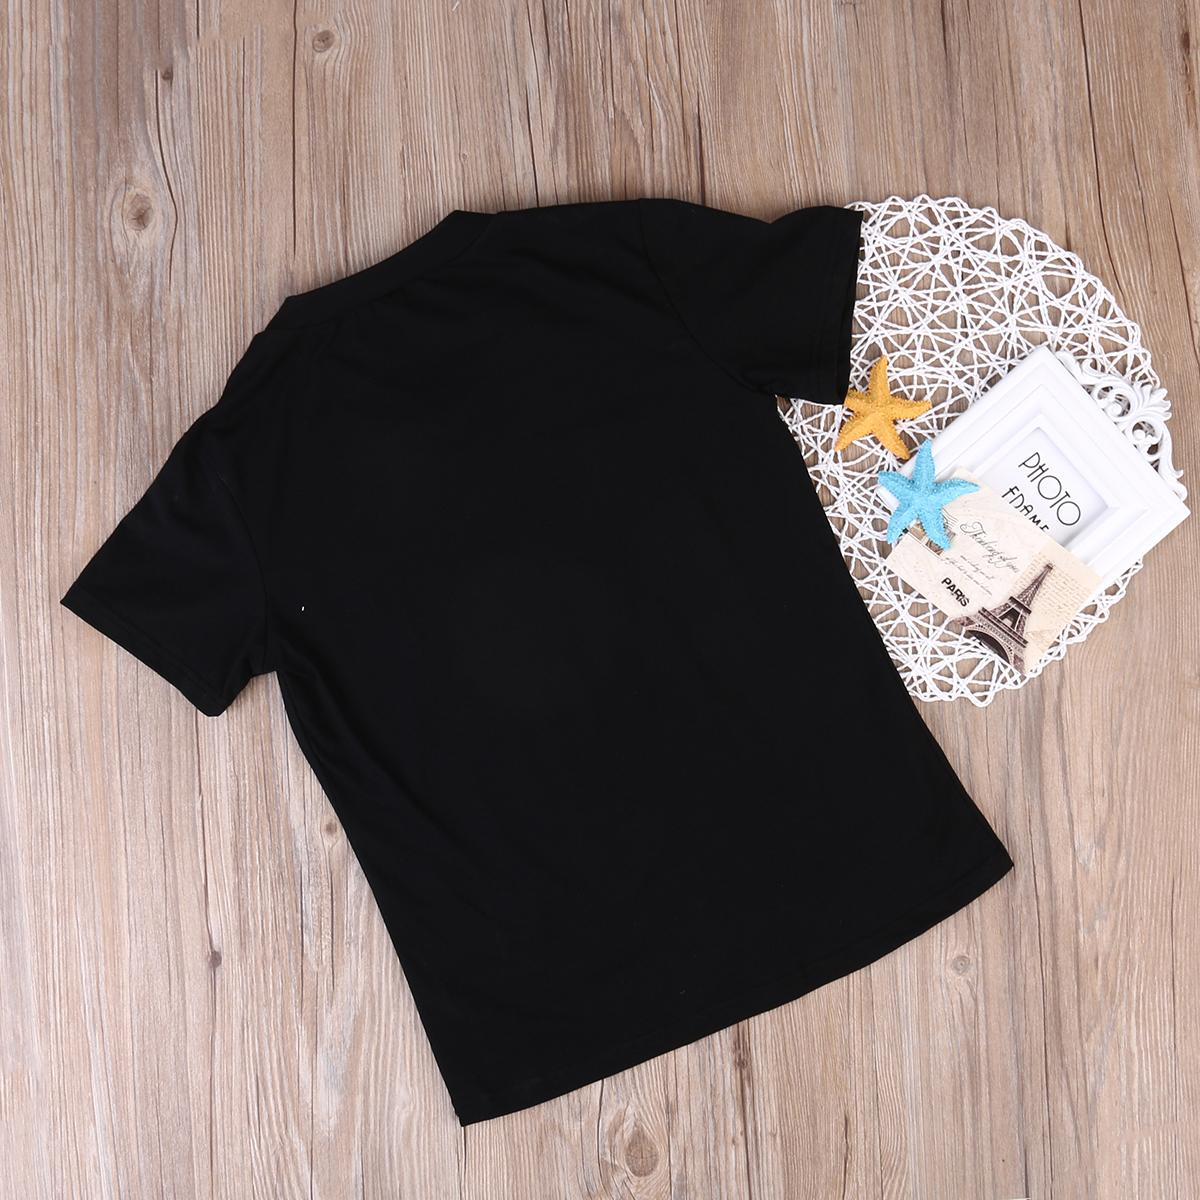 Mama Baby Bär Familie Passendes T-Shirt Bodys Gold Brief Kleidung T-Shirts Tops Outfits Sets Kleidung